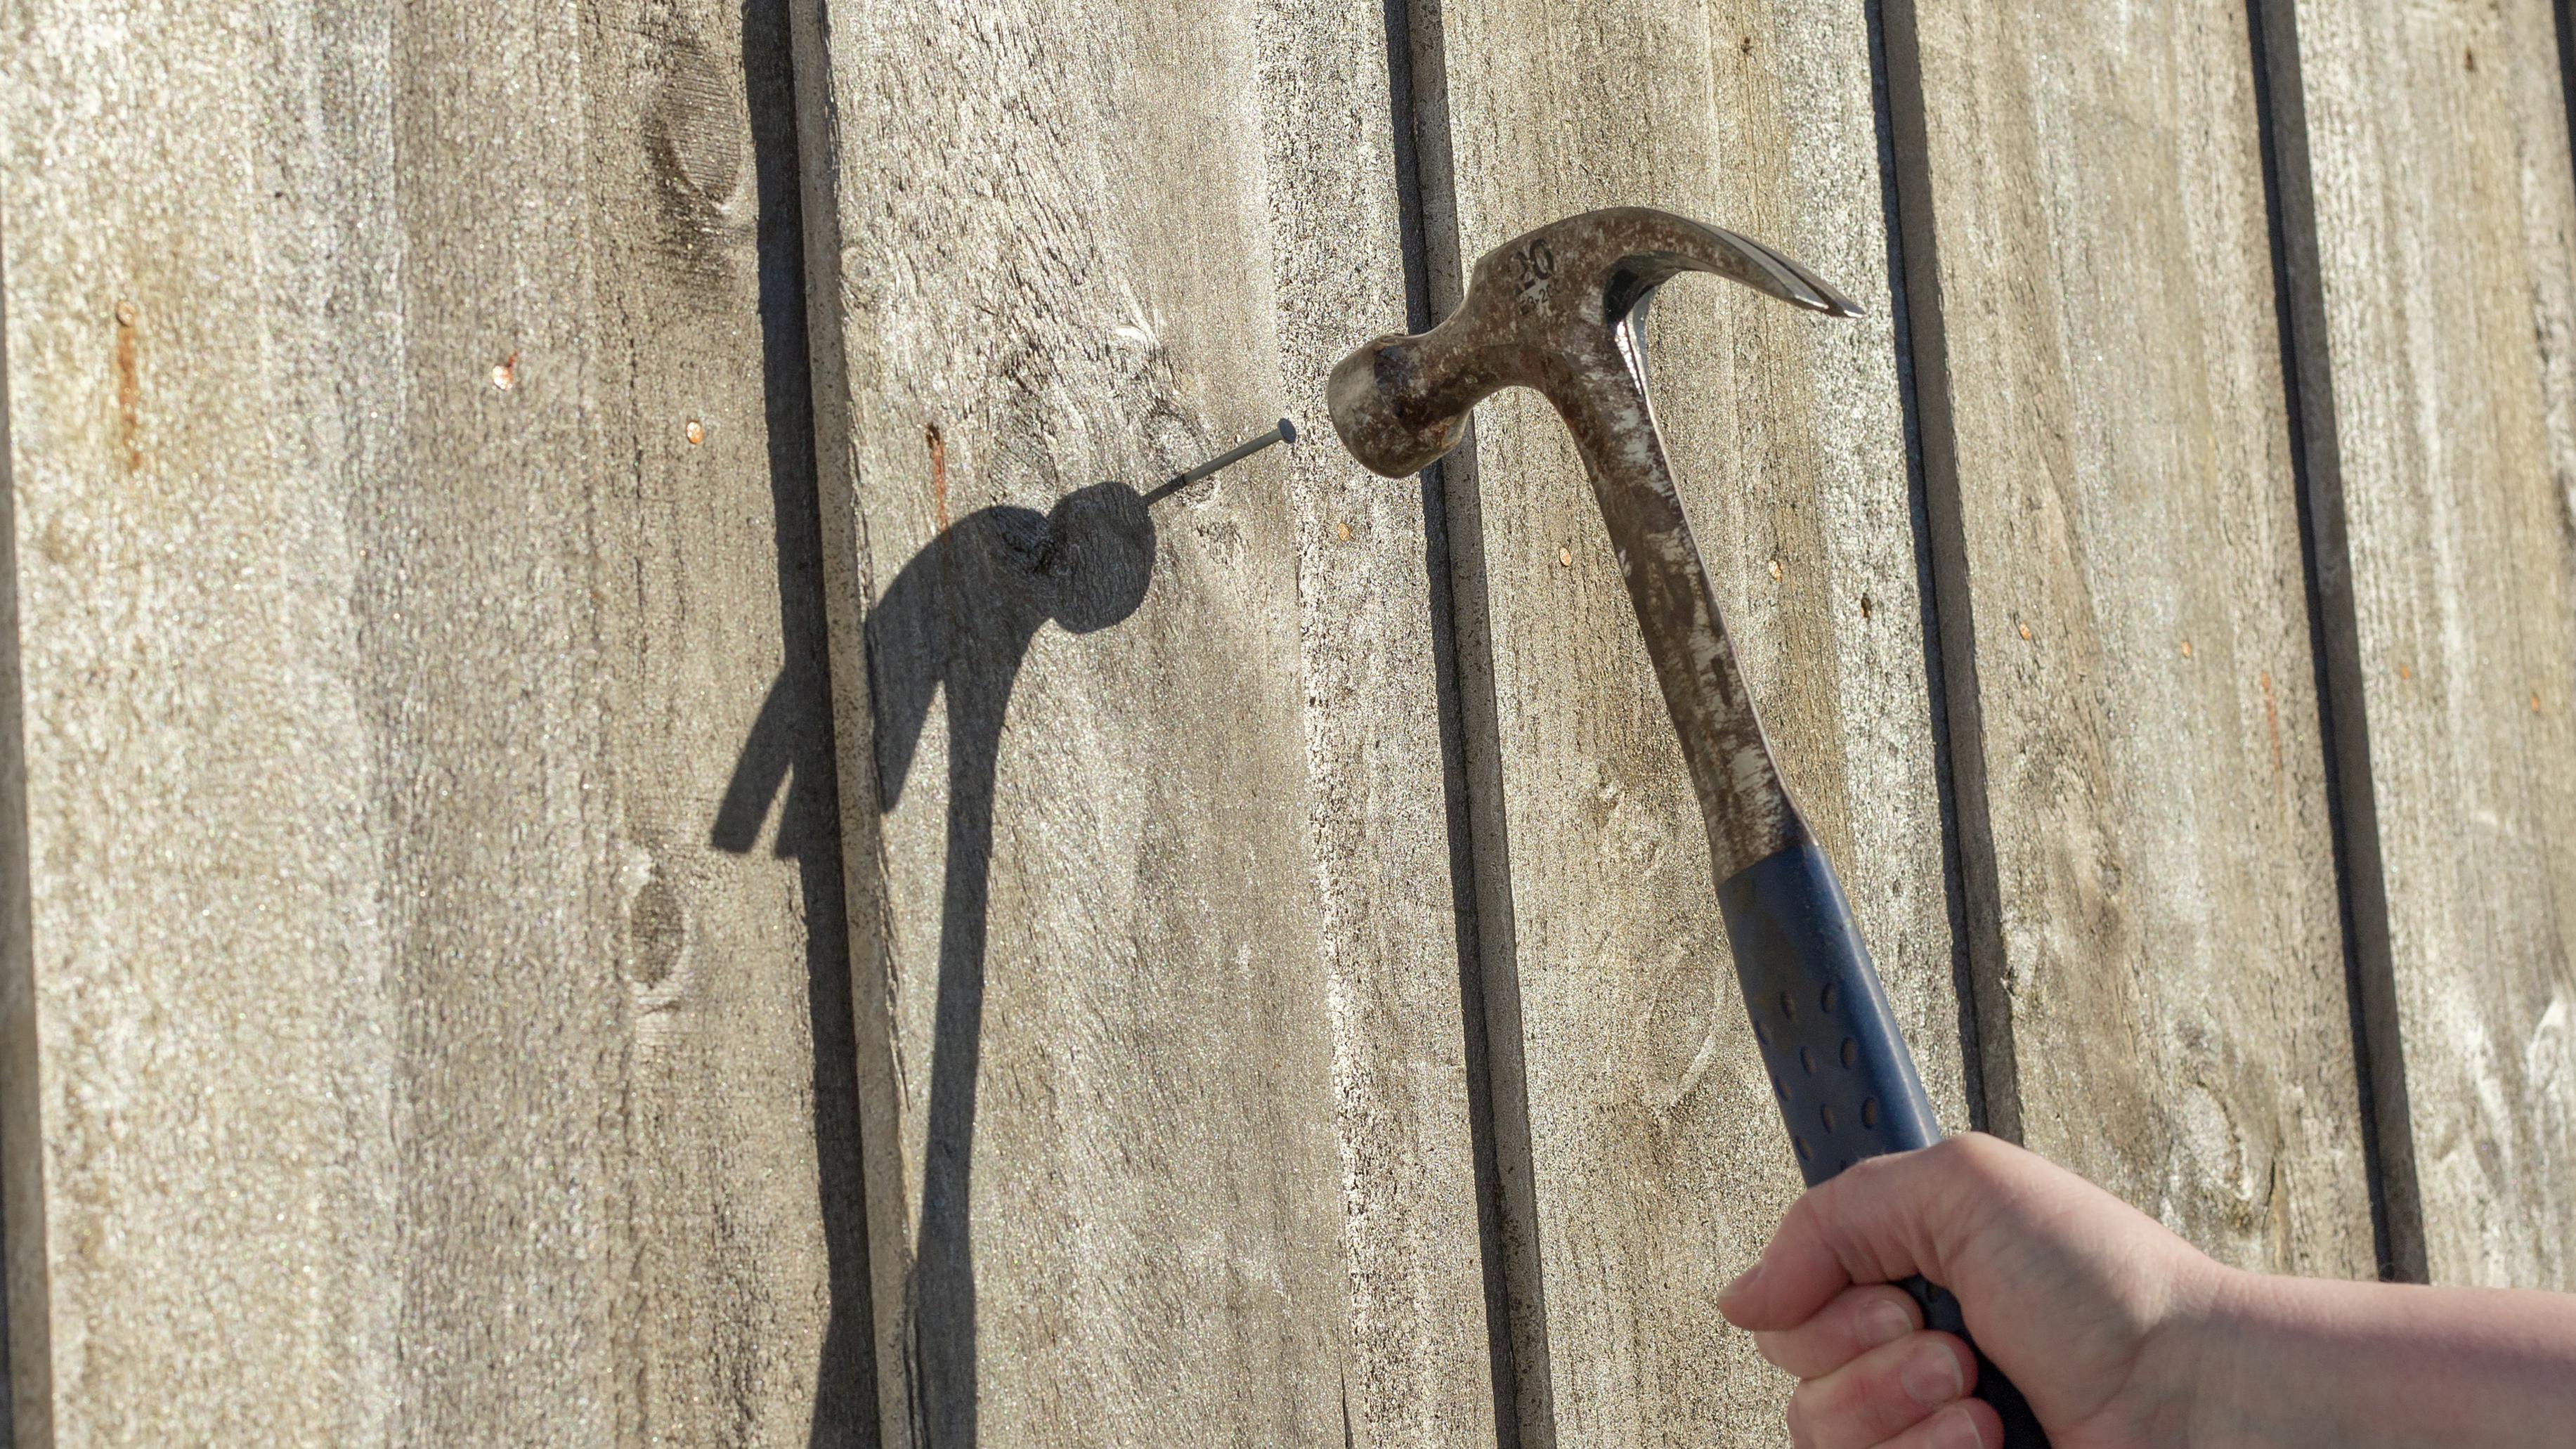 Person hammering a nail into a wooden fence.